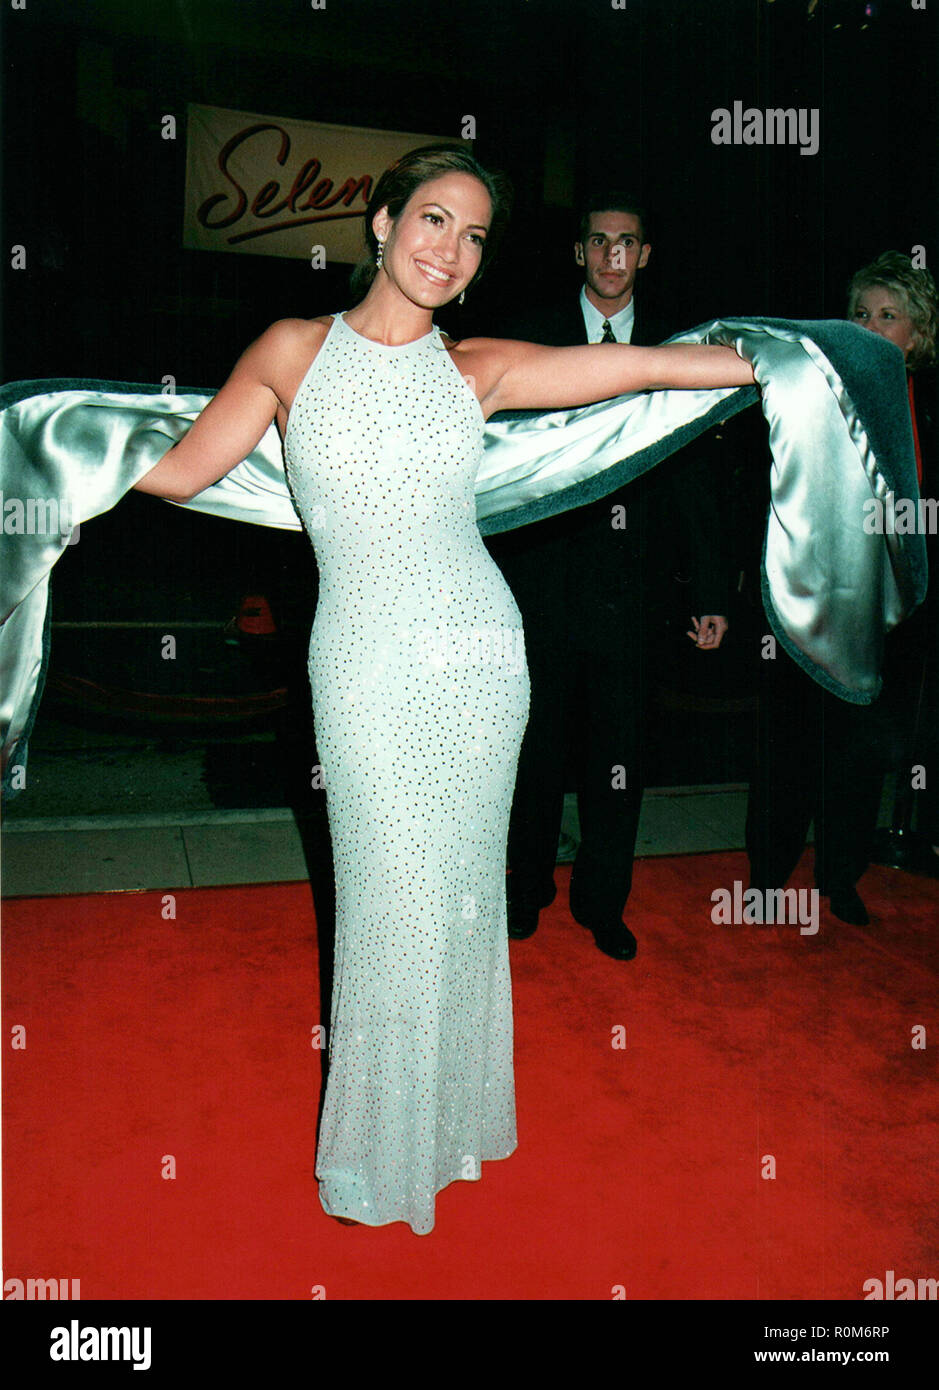 Jennifer Lopez 1999 High Resolution Stock Photography And Images Alamy